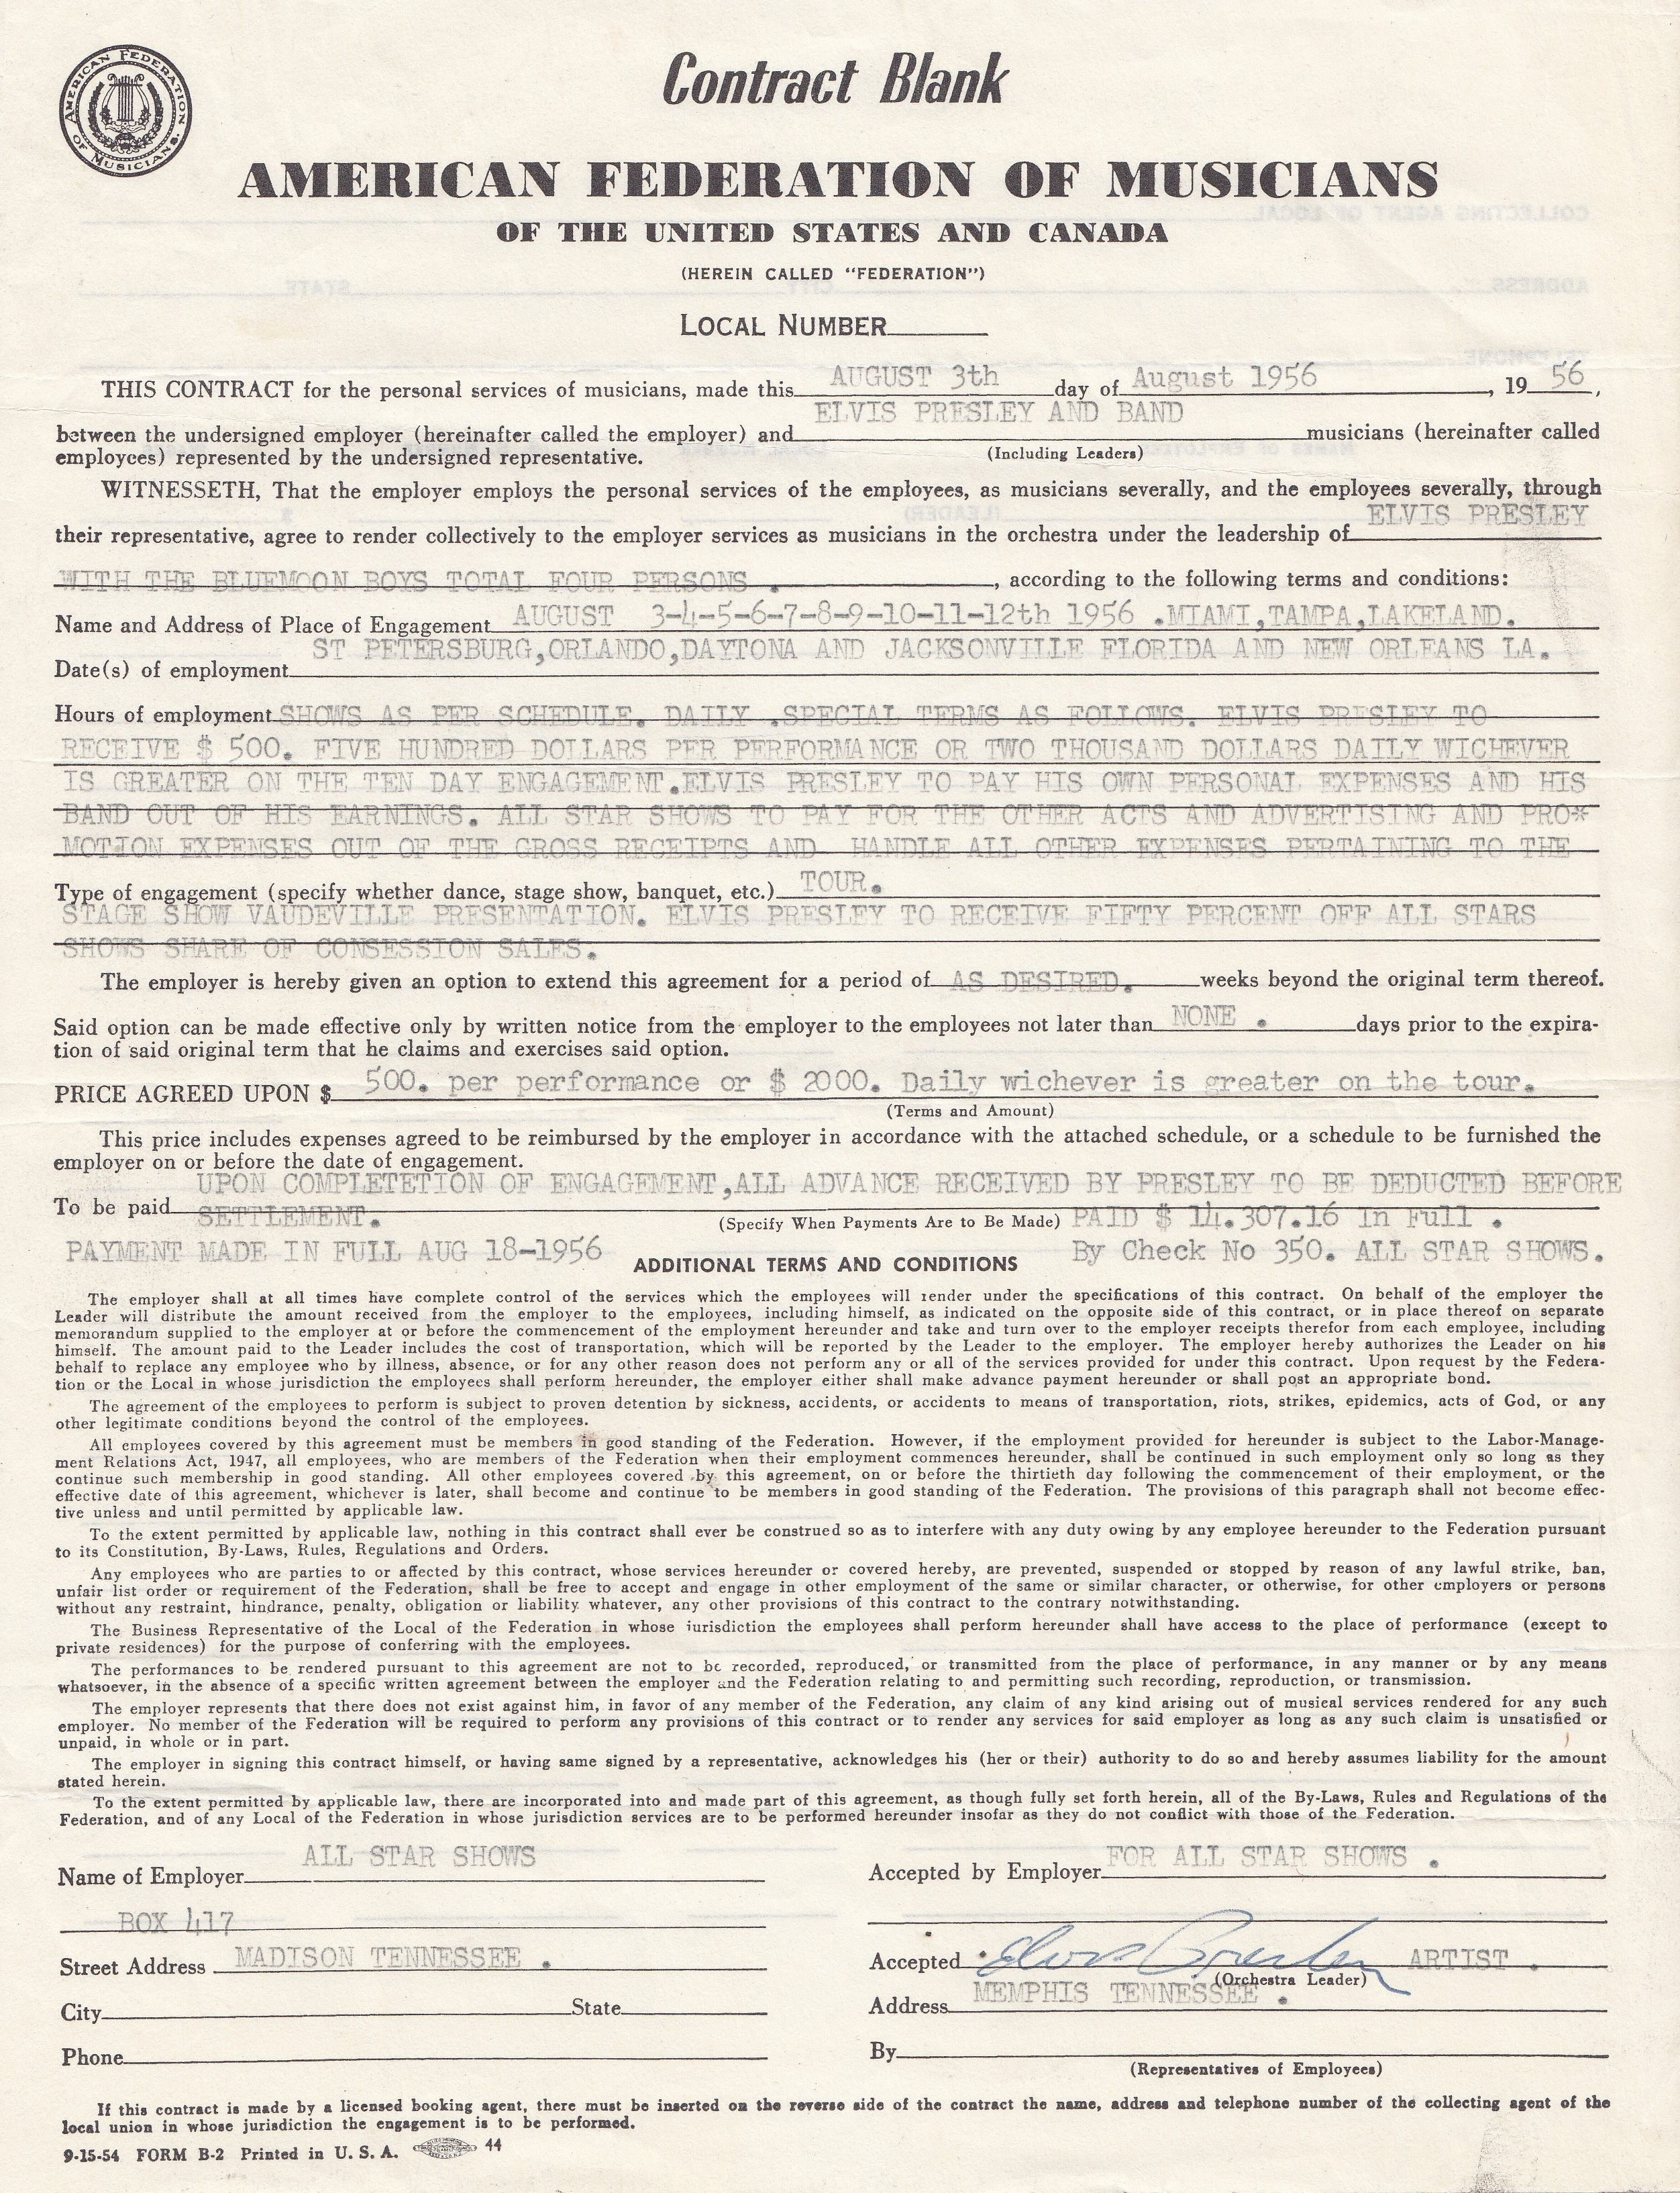 Elvis Presley's personally owned famous hand signed 1956 August Tour performance contract for August 1956. This tour was regarded as one of the was one of the most important and the Genesis for the Rock and Roll phenomena, 1956 the year that Elvis truly exploded onto the scene. Photo: Henry Aldridge & Son